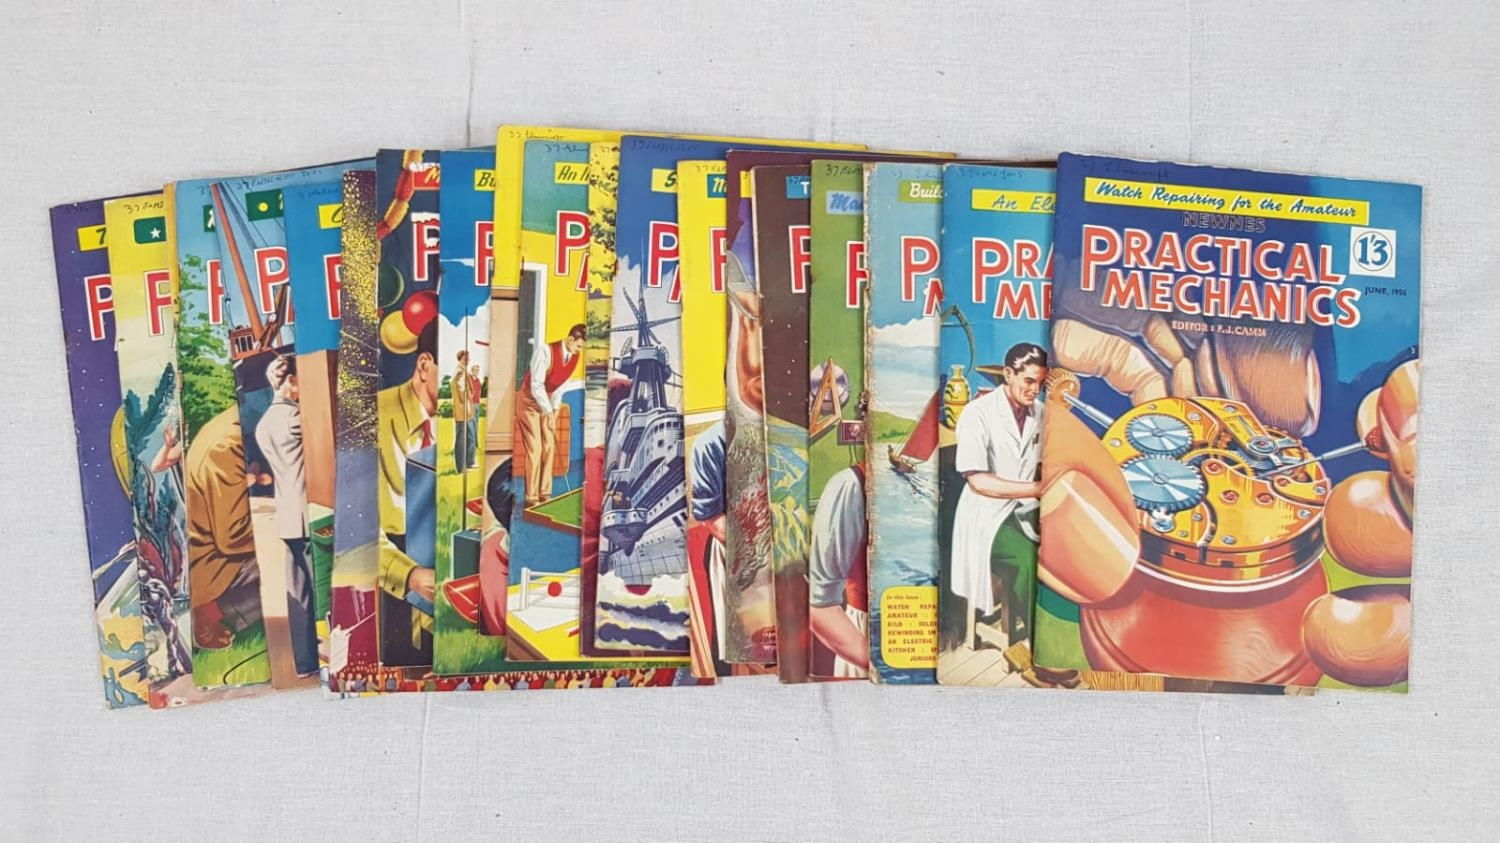 21 Vintage copies of Practical Mechanics magazine from 1954 to 1956. Including the classics: Watch